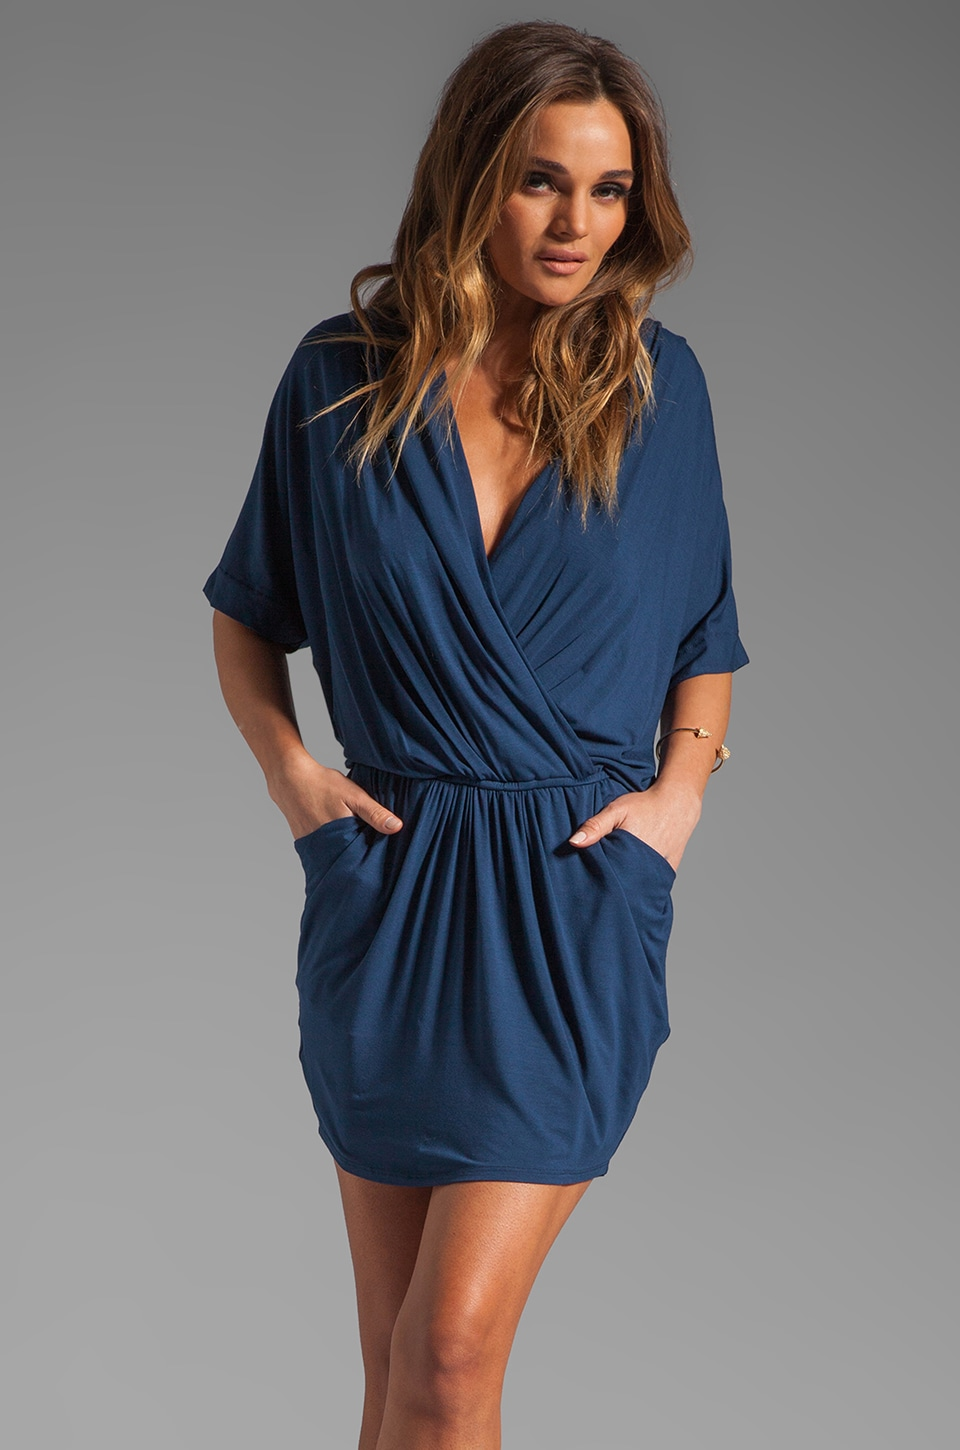 James & Joy Justine Dress in Navy